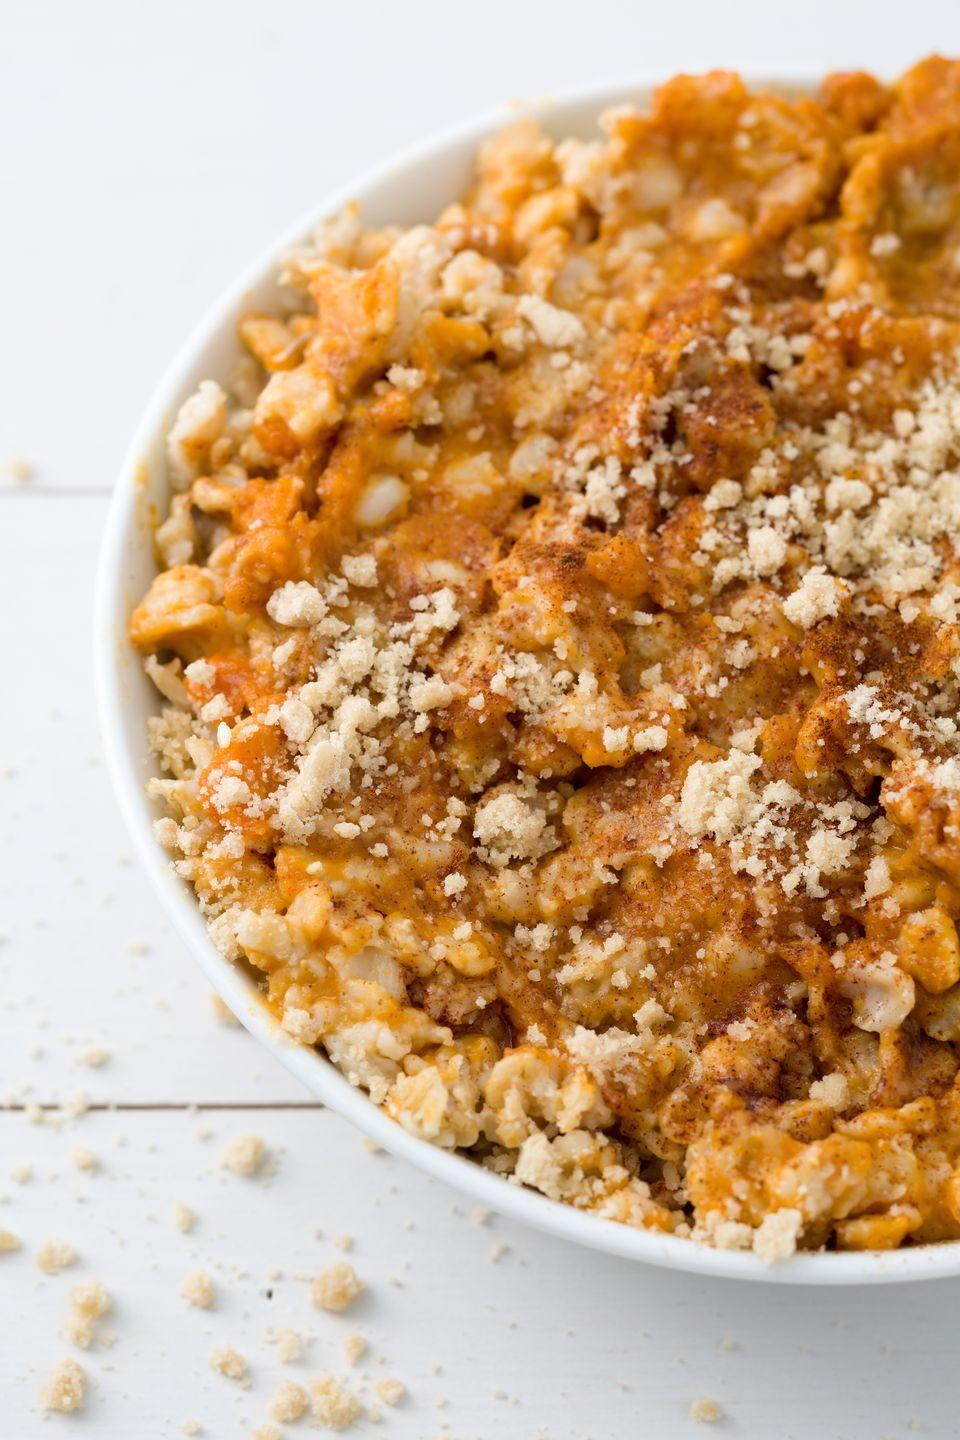 """<p>Get a taste of fall all year with these simple stir-ins: canned pumpkin, pumpkin pie spice, and cinnamon, plus a graham cracker crumble topping.</p><p>Get the recipe from <a href=""""https://www.delish.com/cooking/recipe-ideas/recipes/a44502/pumpkin-pie-oatmeal-recipe/"""" rel=""""nofollow noopener"""" target=""""_blank"""" data-ylk=""""slk:Delish"""" class=""""link rapid-noclick-resp"""">Delish</a>.</p>"""